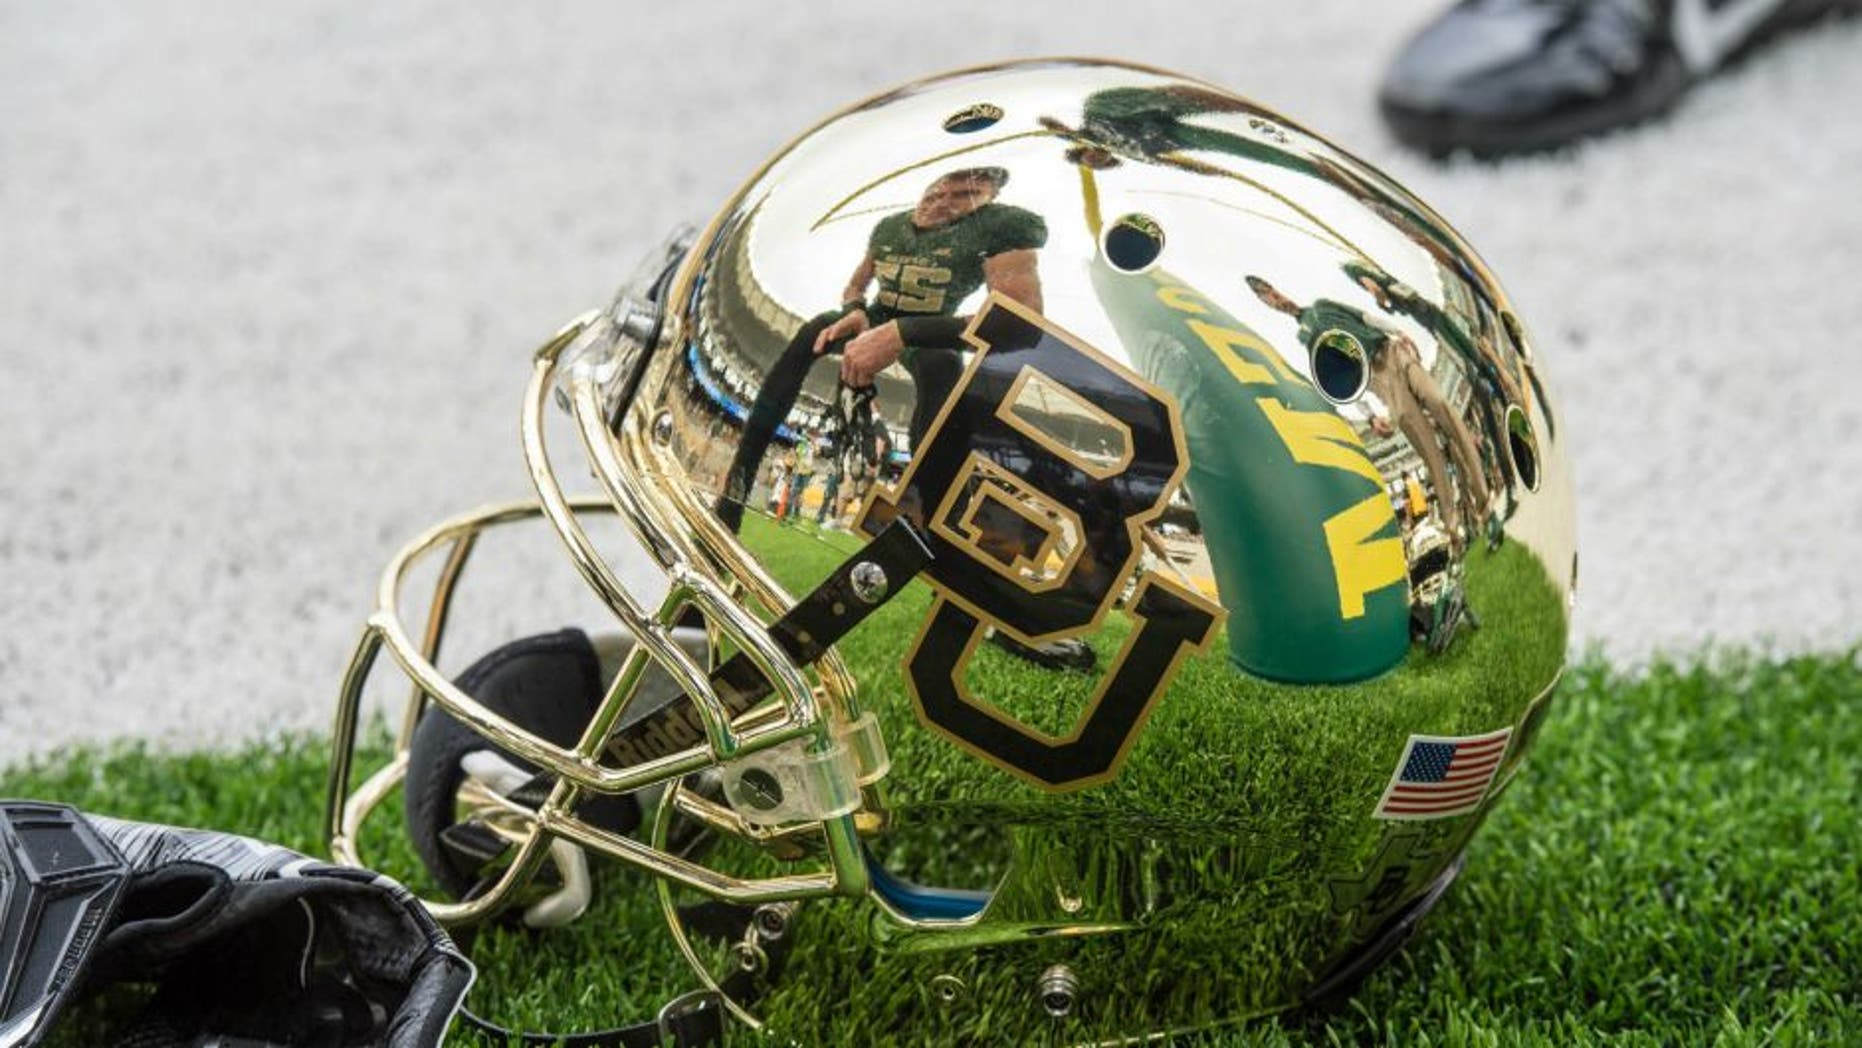 Oct 11, 2014; Waco, TX, USA; A view of the helmet of Baylor Bears running back Clay Fuller (23) before the game against the TCU Horned Frogs at McLane Stadium. The Bears defeat Horned Frogs 61-58. Mandatory Credit: Jerome Miron-USA TODAY Sports